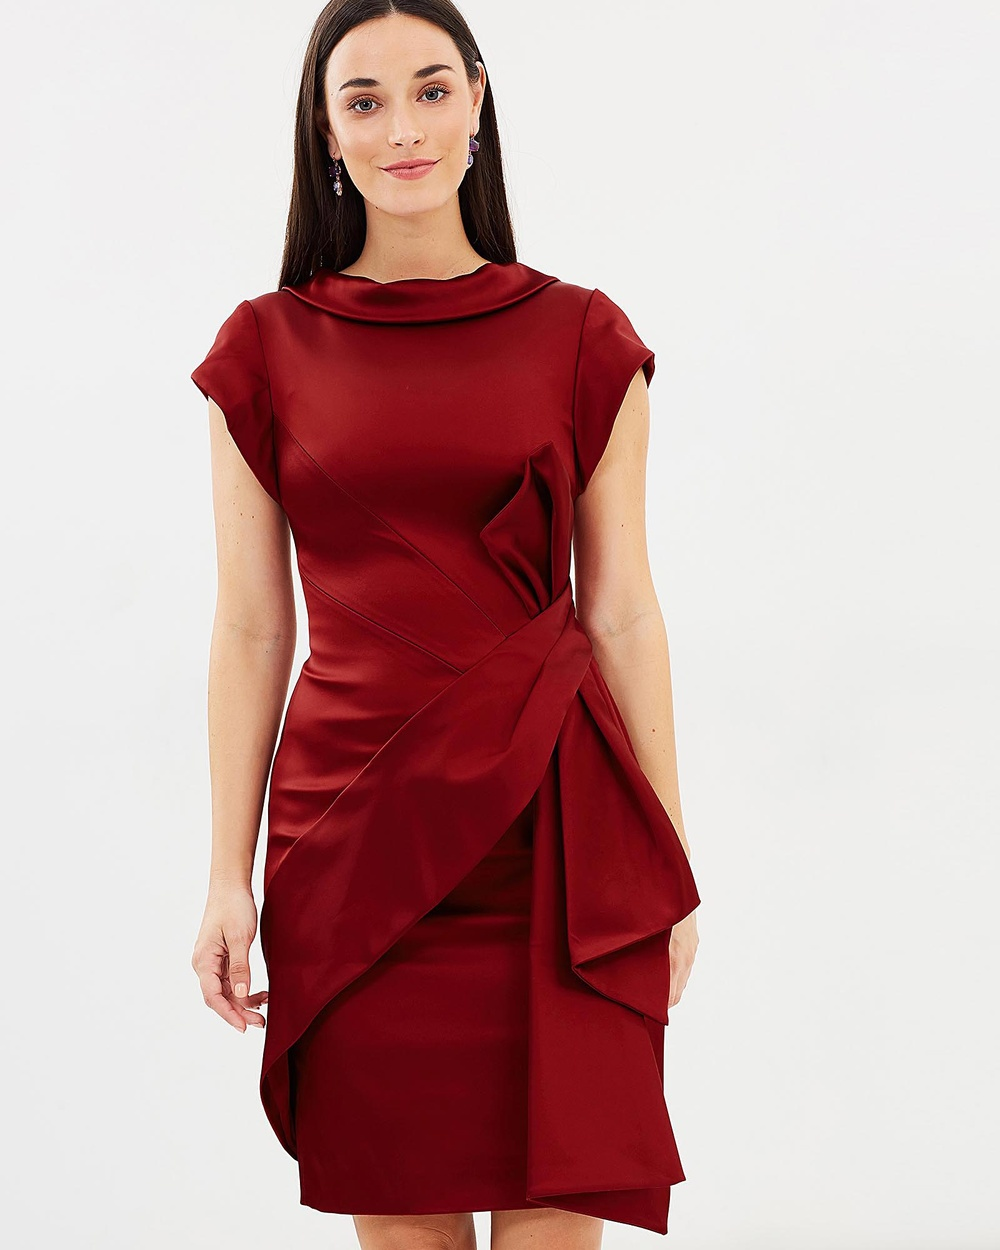 Karen Millen Satin Fold Mini Dress Dresses Dark Red Satin Fold Mini Dress